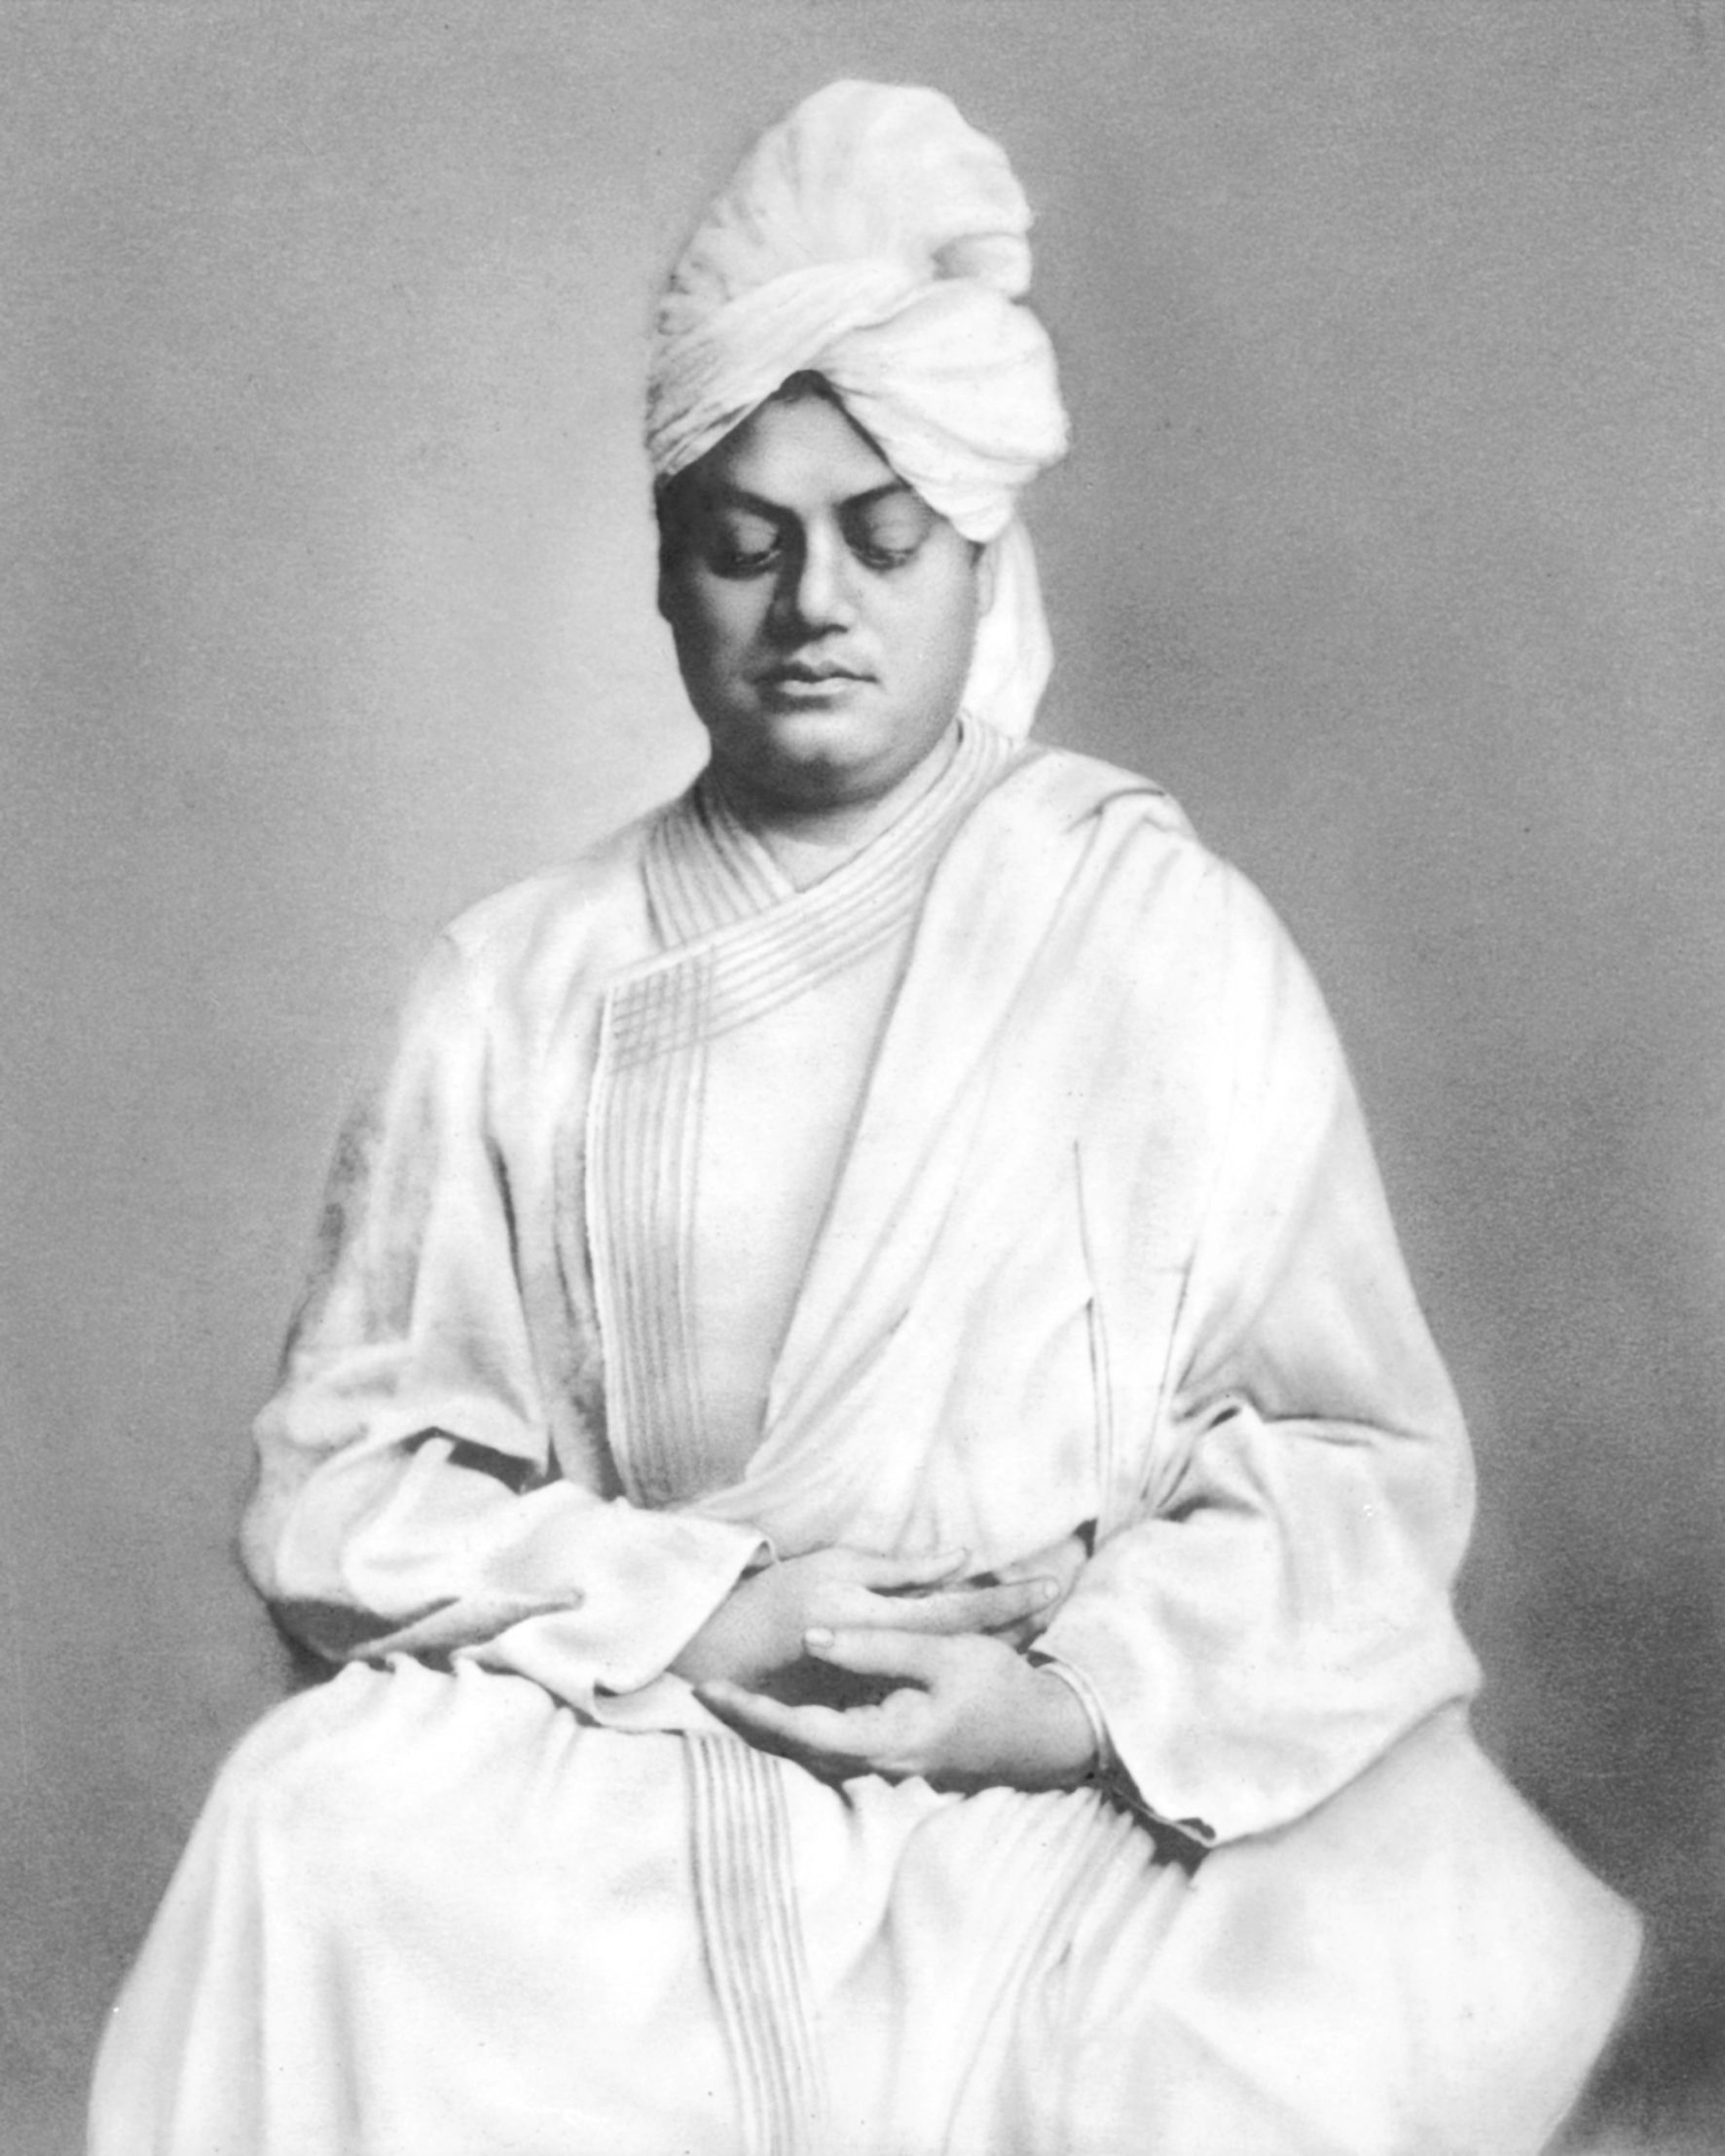 hinduism and monk swami vivekananda Here is a primer on the hindu monk who took hinduism to the world stage in the late 19th century who was vivekananda swami vivekananda was the chief disciple of 19th century mystic and yogi ramakrishna paramhansa.